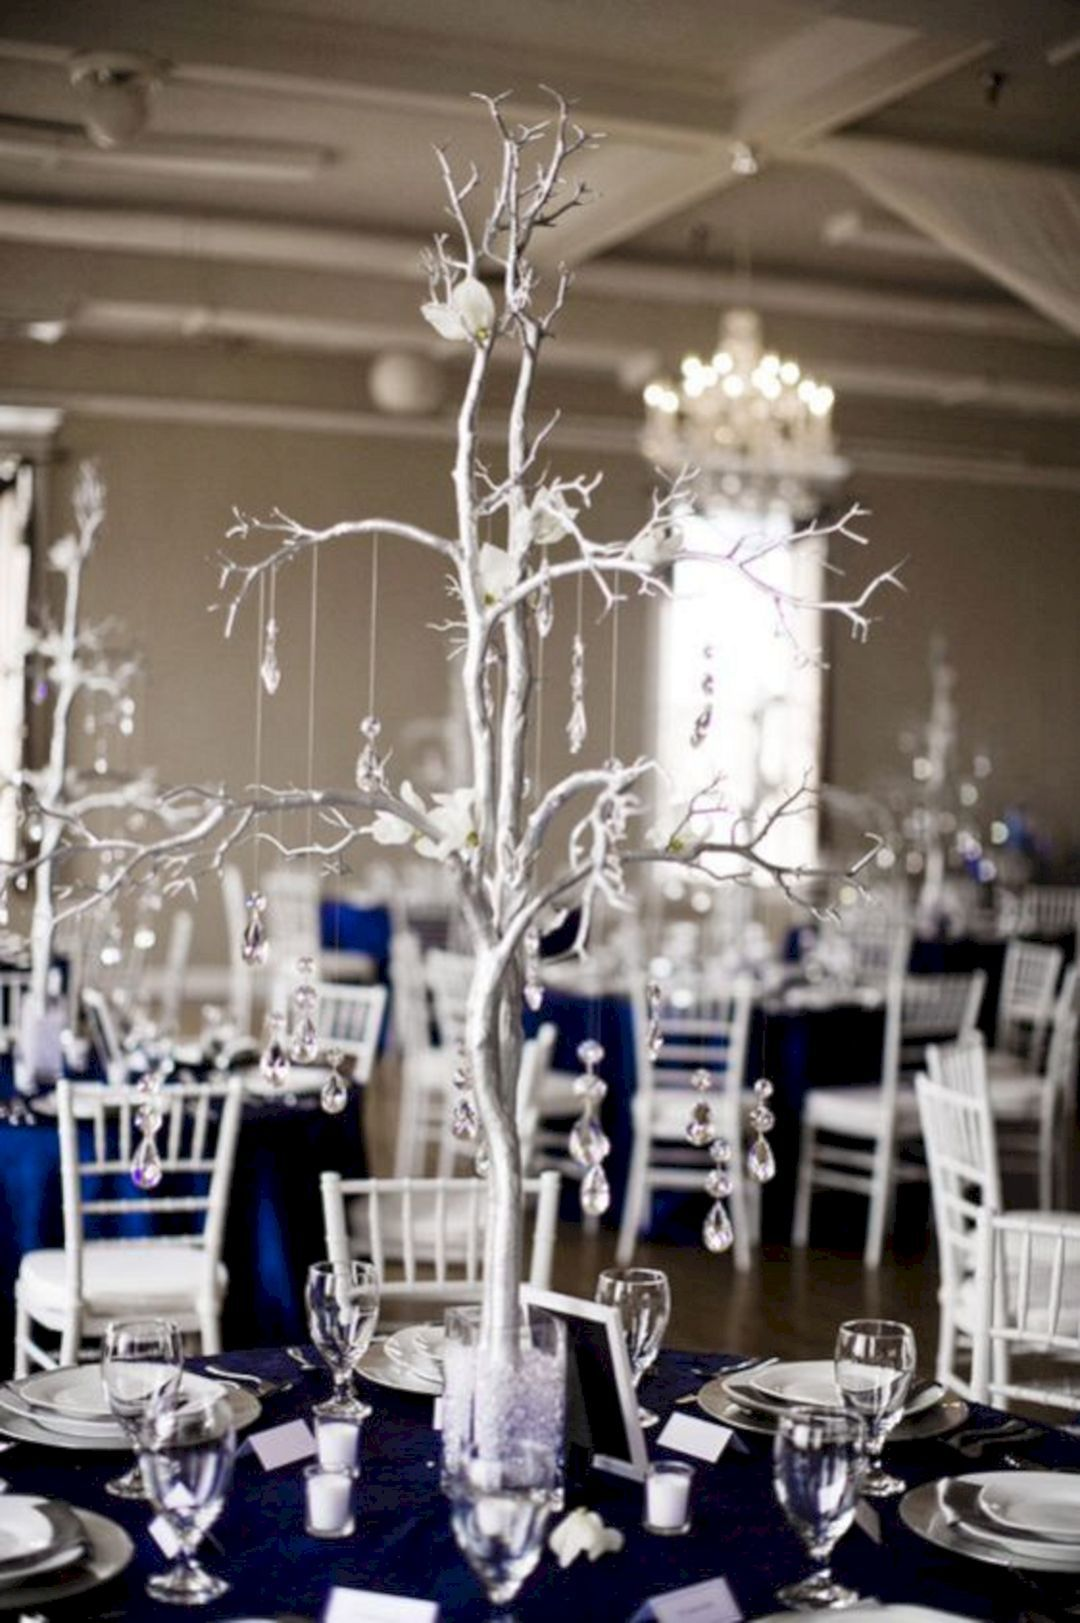 25 elegant blue and silver wedding decorations ideas for wedding 25 elegant blue and silver wedding decorations ideas for wedding decor perfectly junglespirit Images